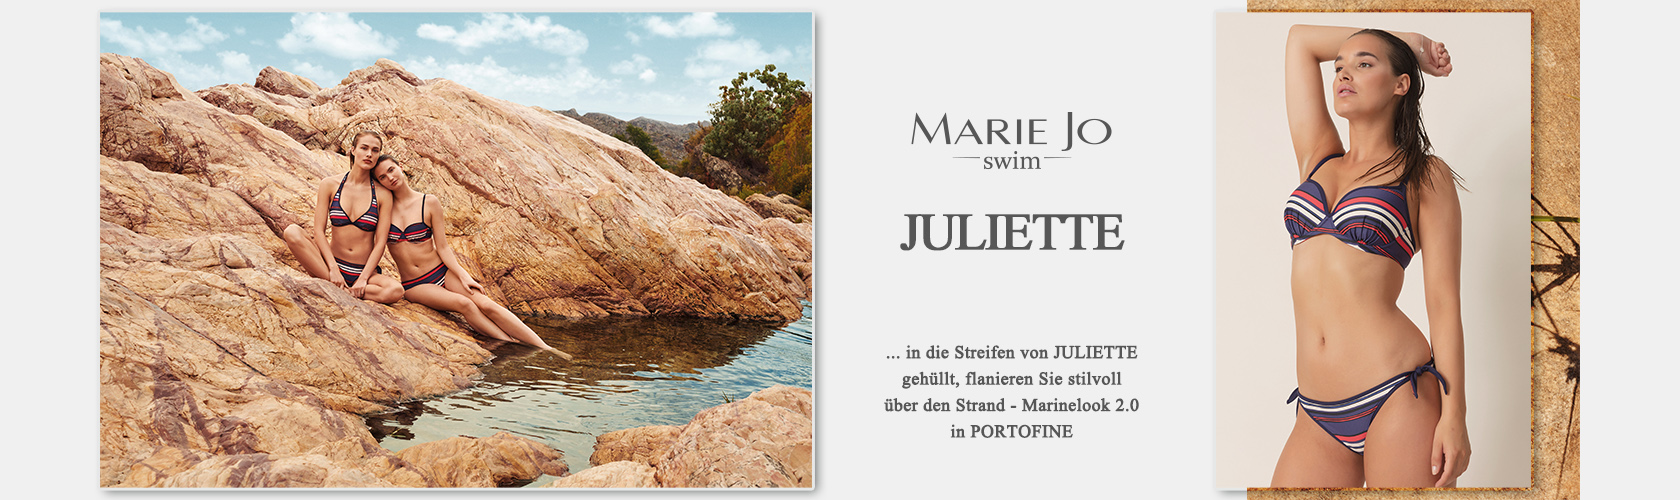 Slideshow JULIETTE PTF WDH 17.07.